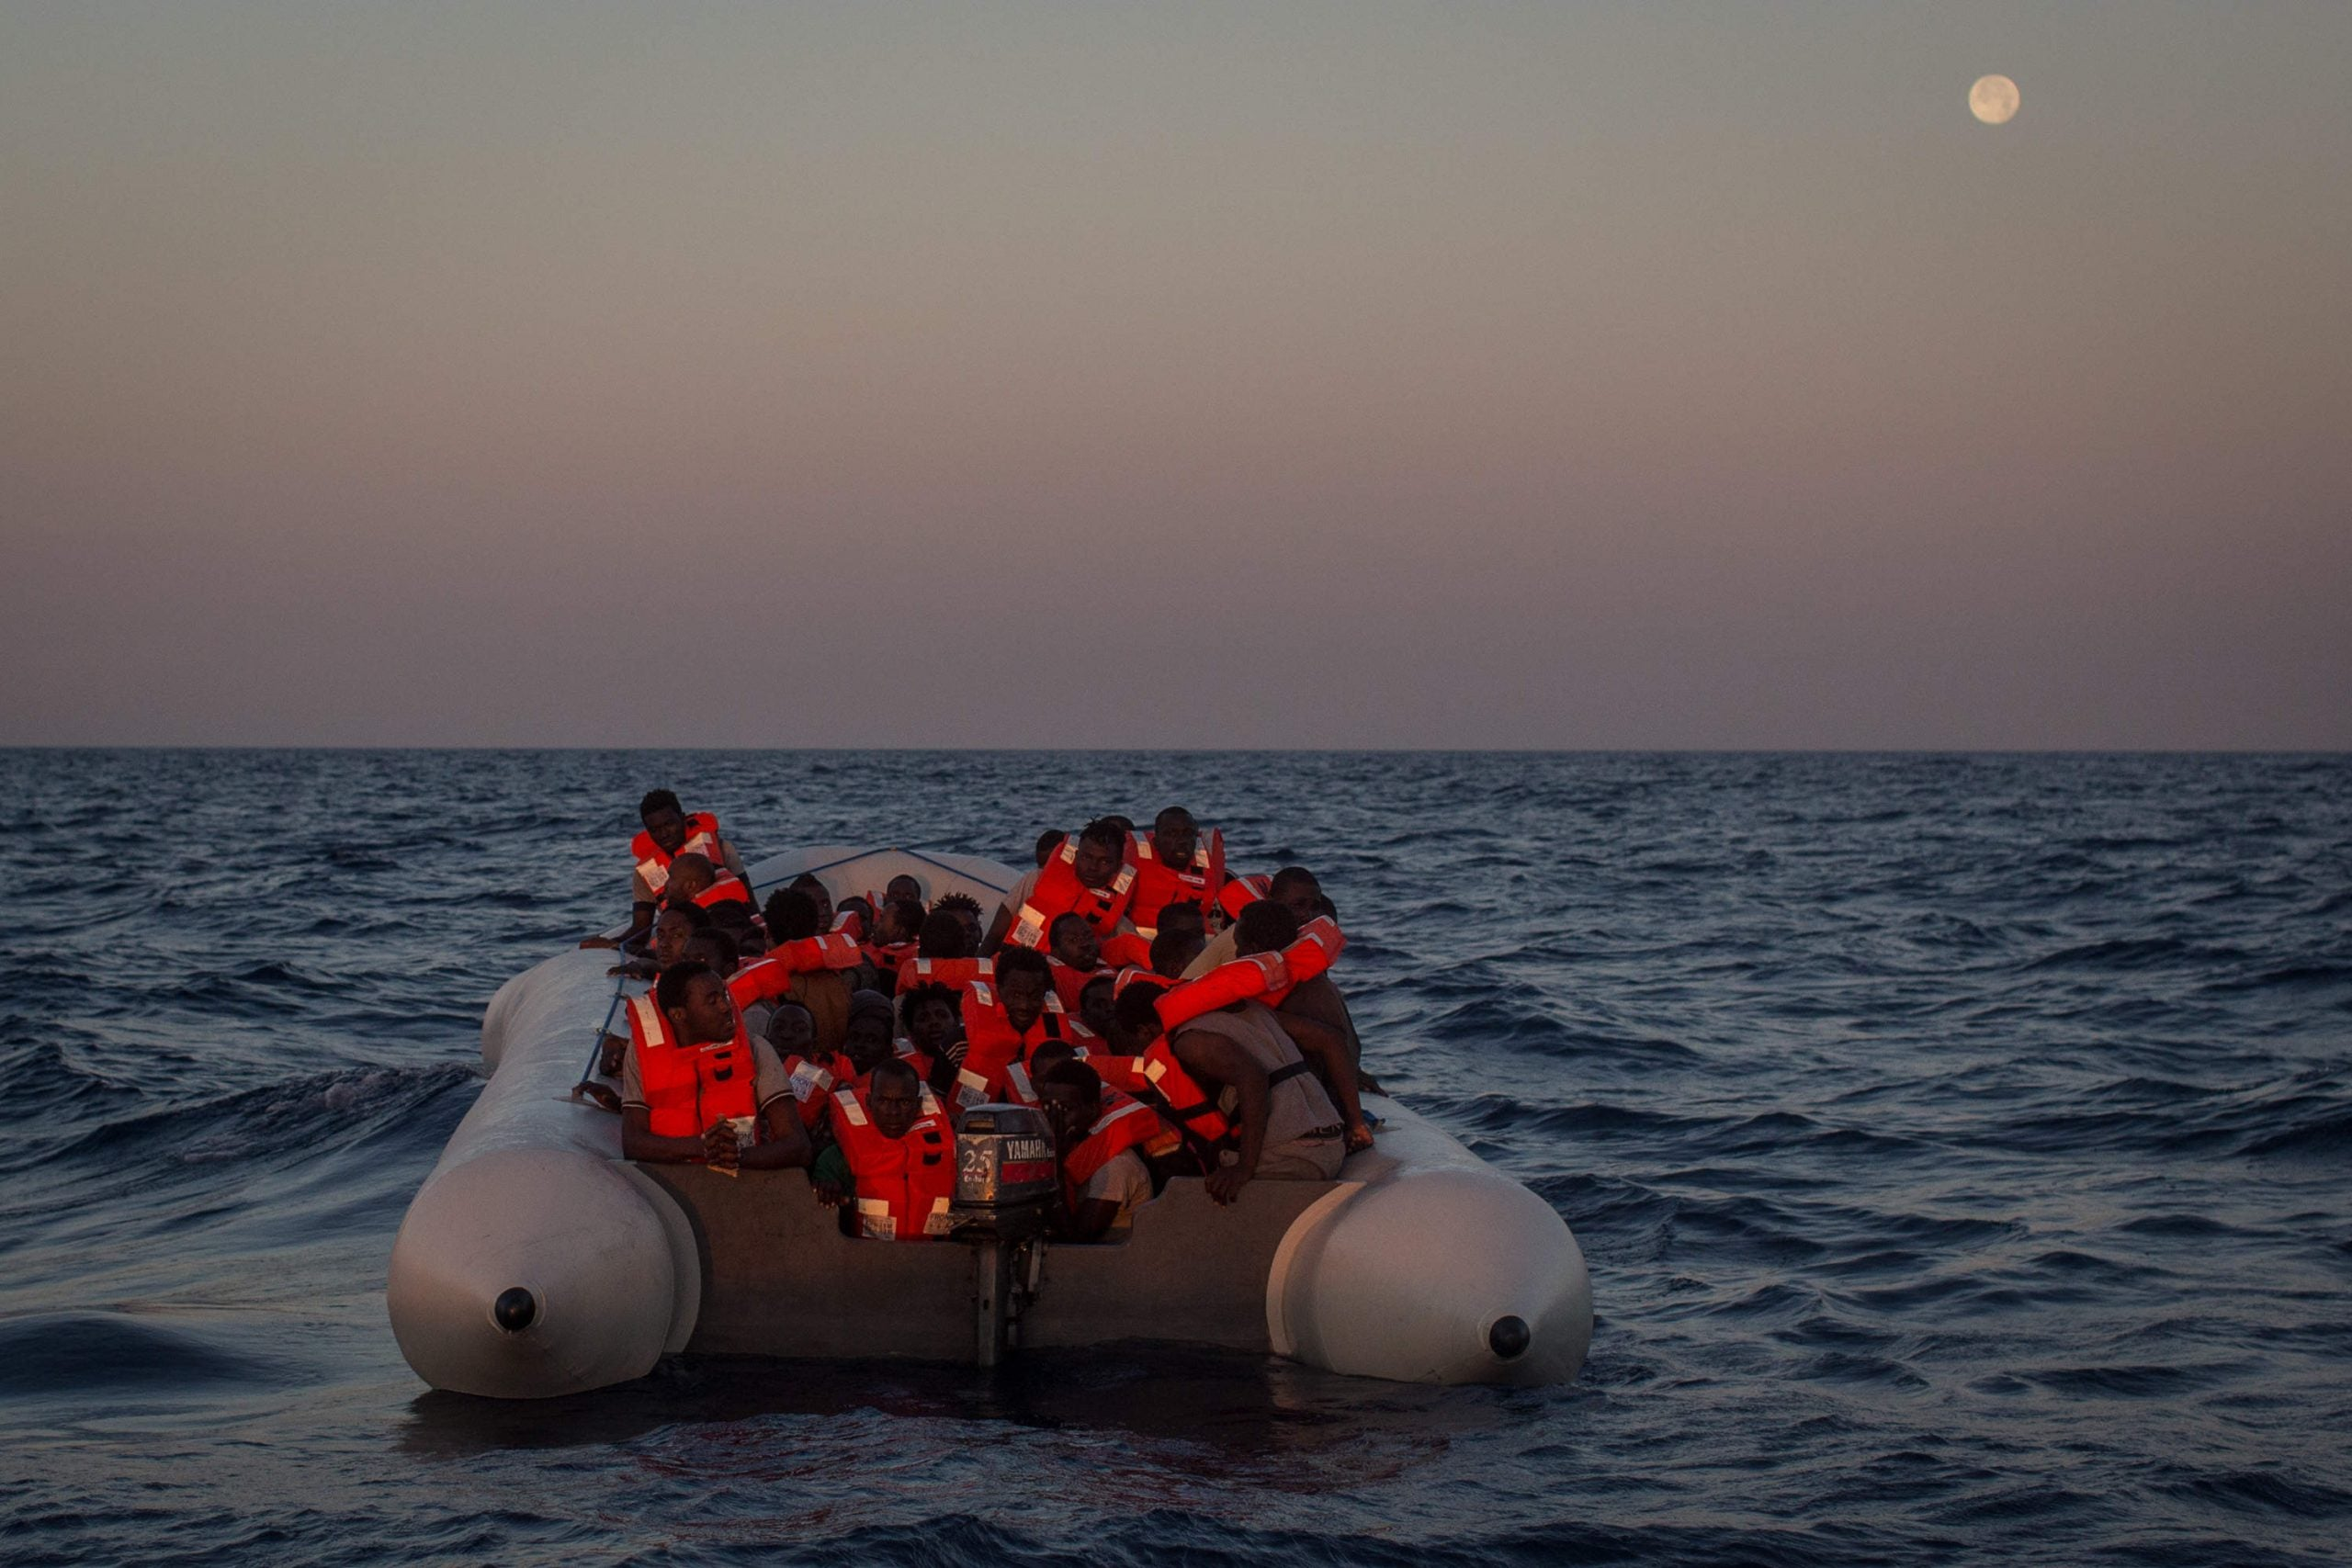 In the new climate of fear, our rescue boat turned away from people drowning